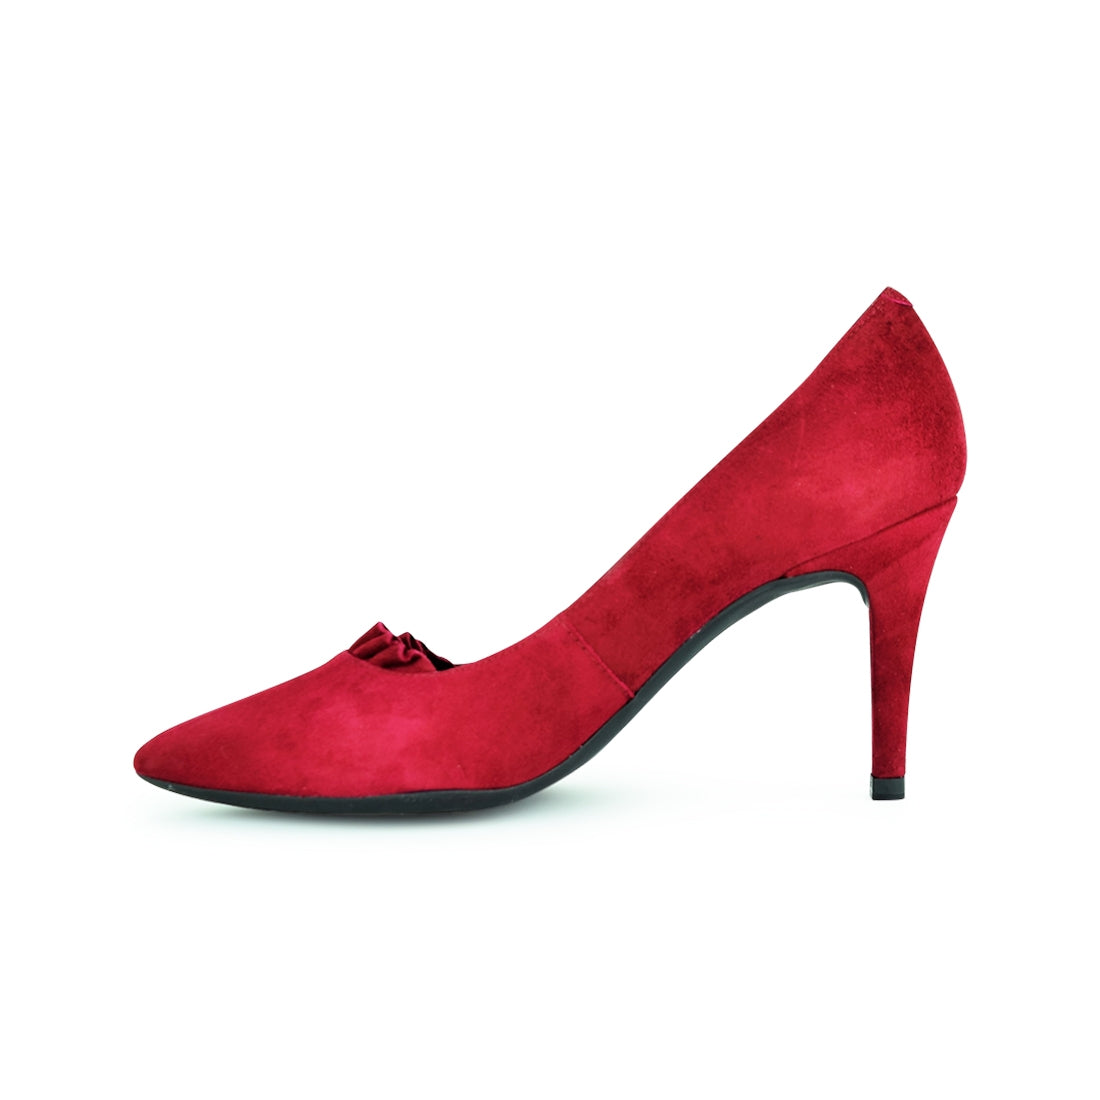 DALI - Unisa Court Shoe Red Suede